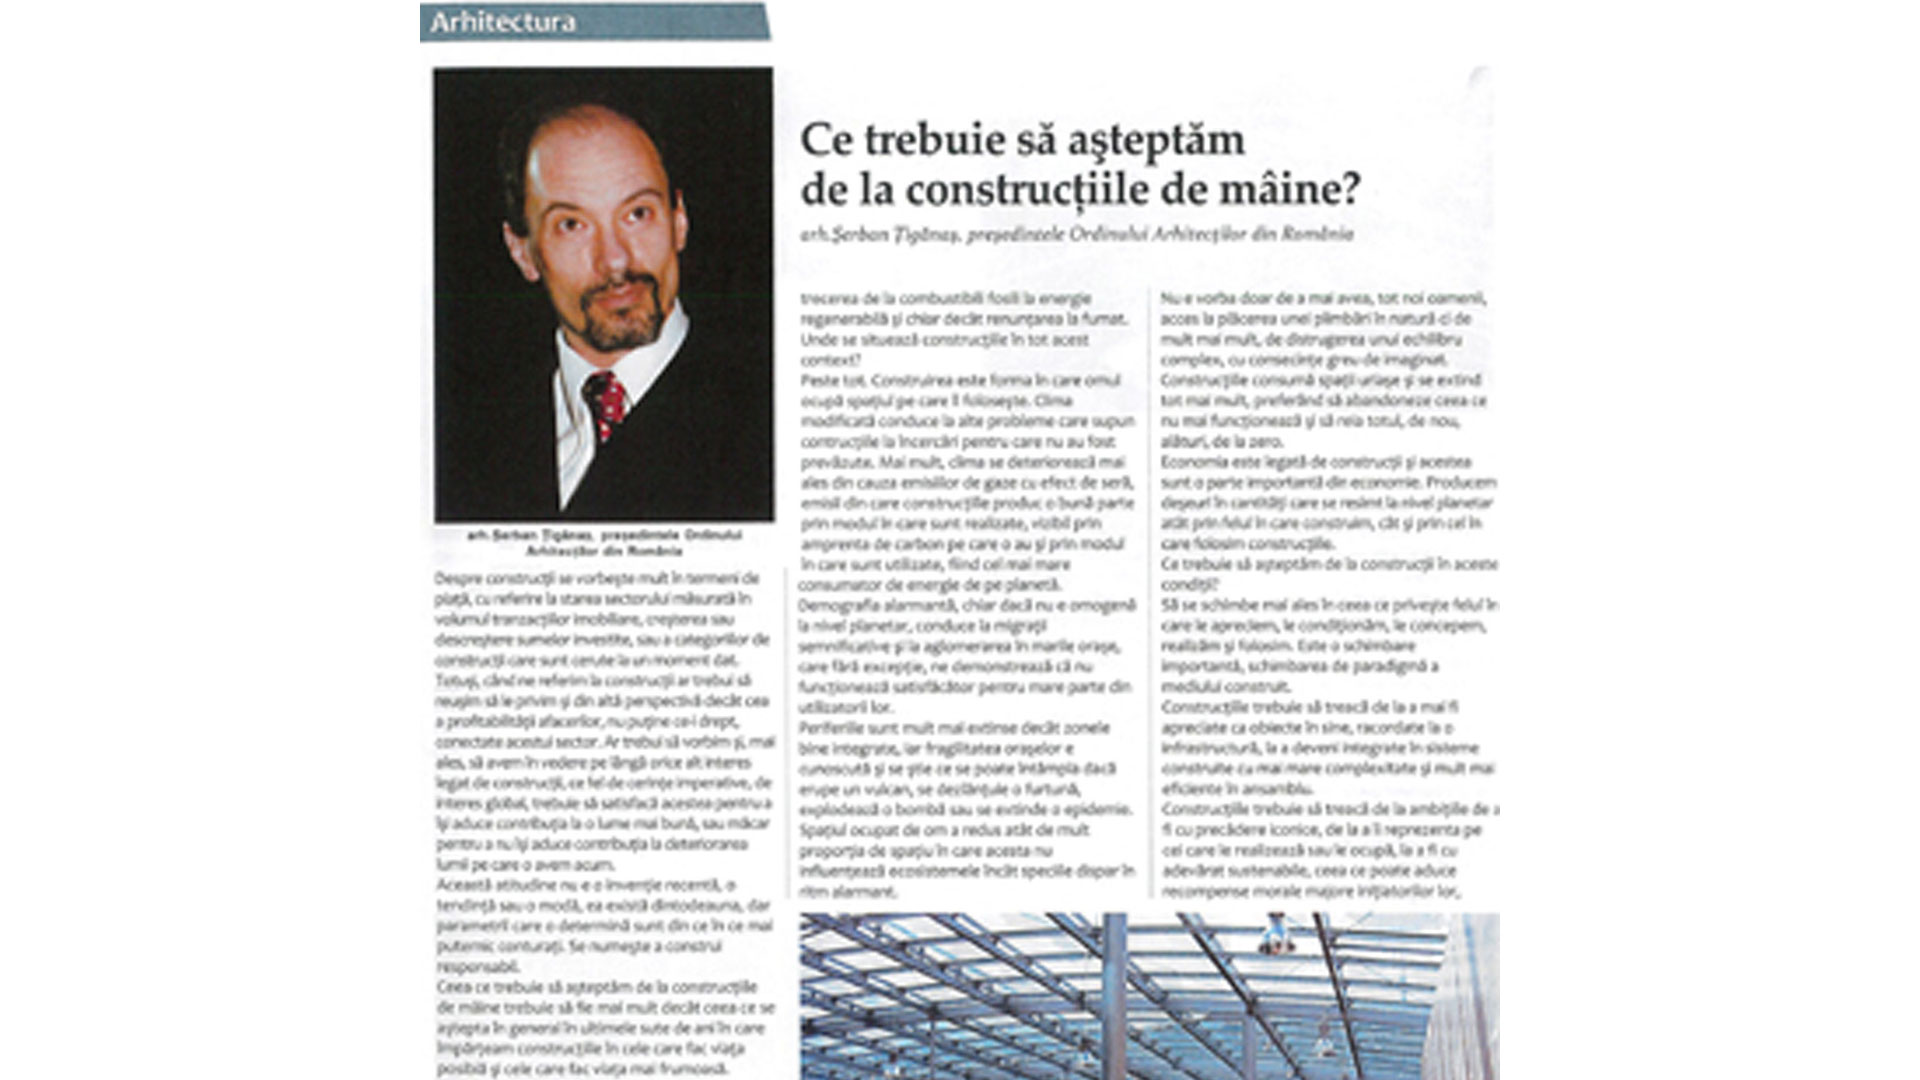 Arena Construcțiilor no.4, Article on the Future of Buildings, 2015